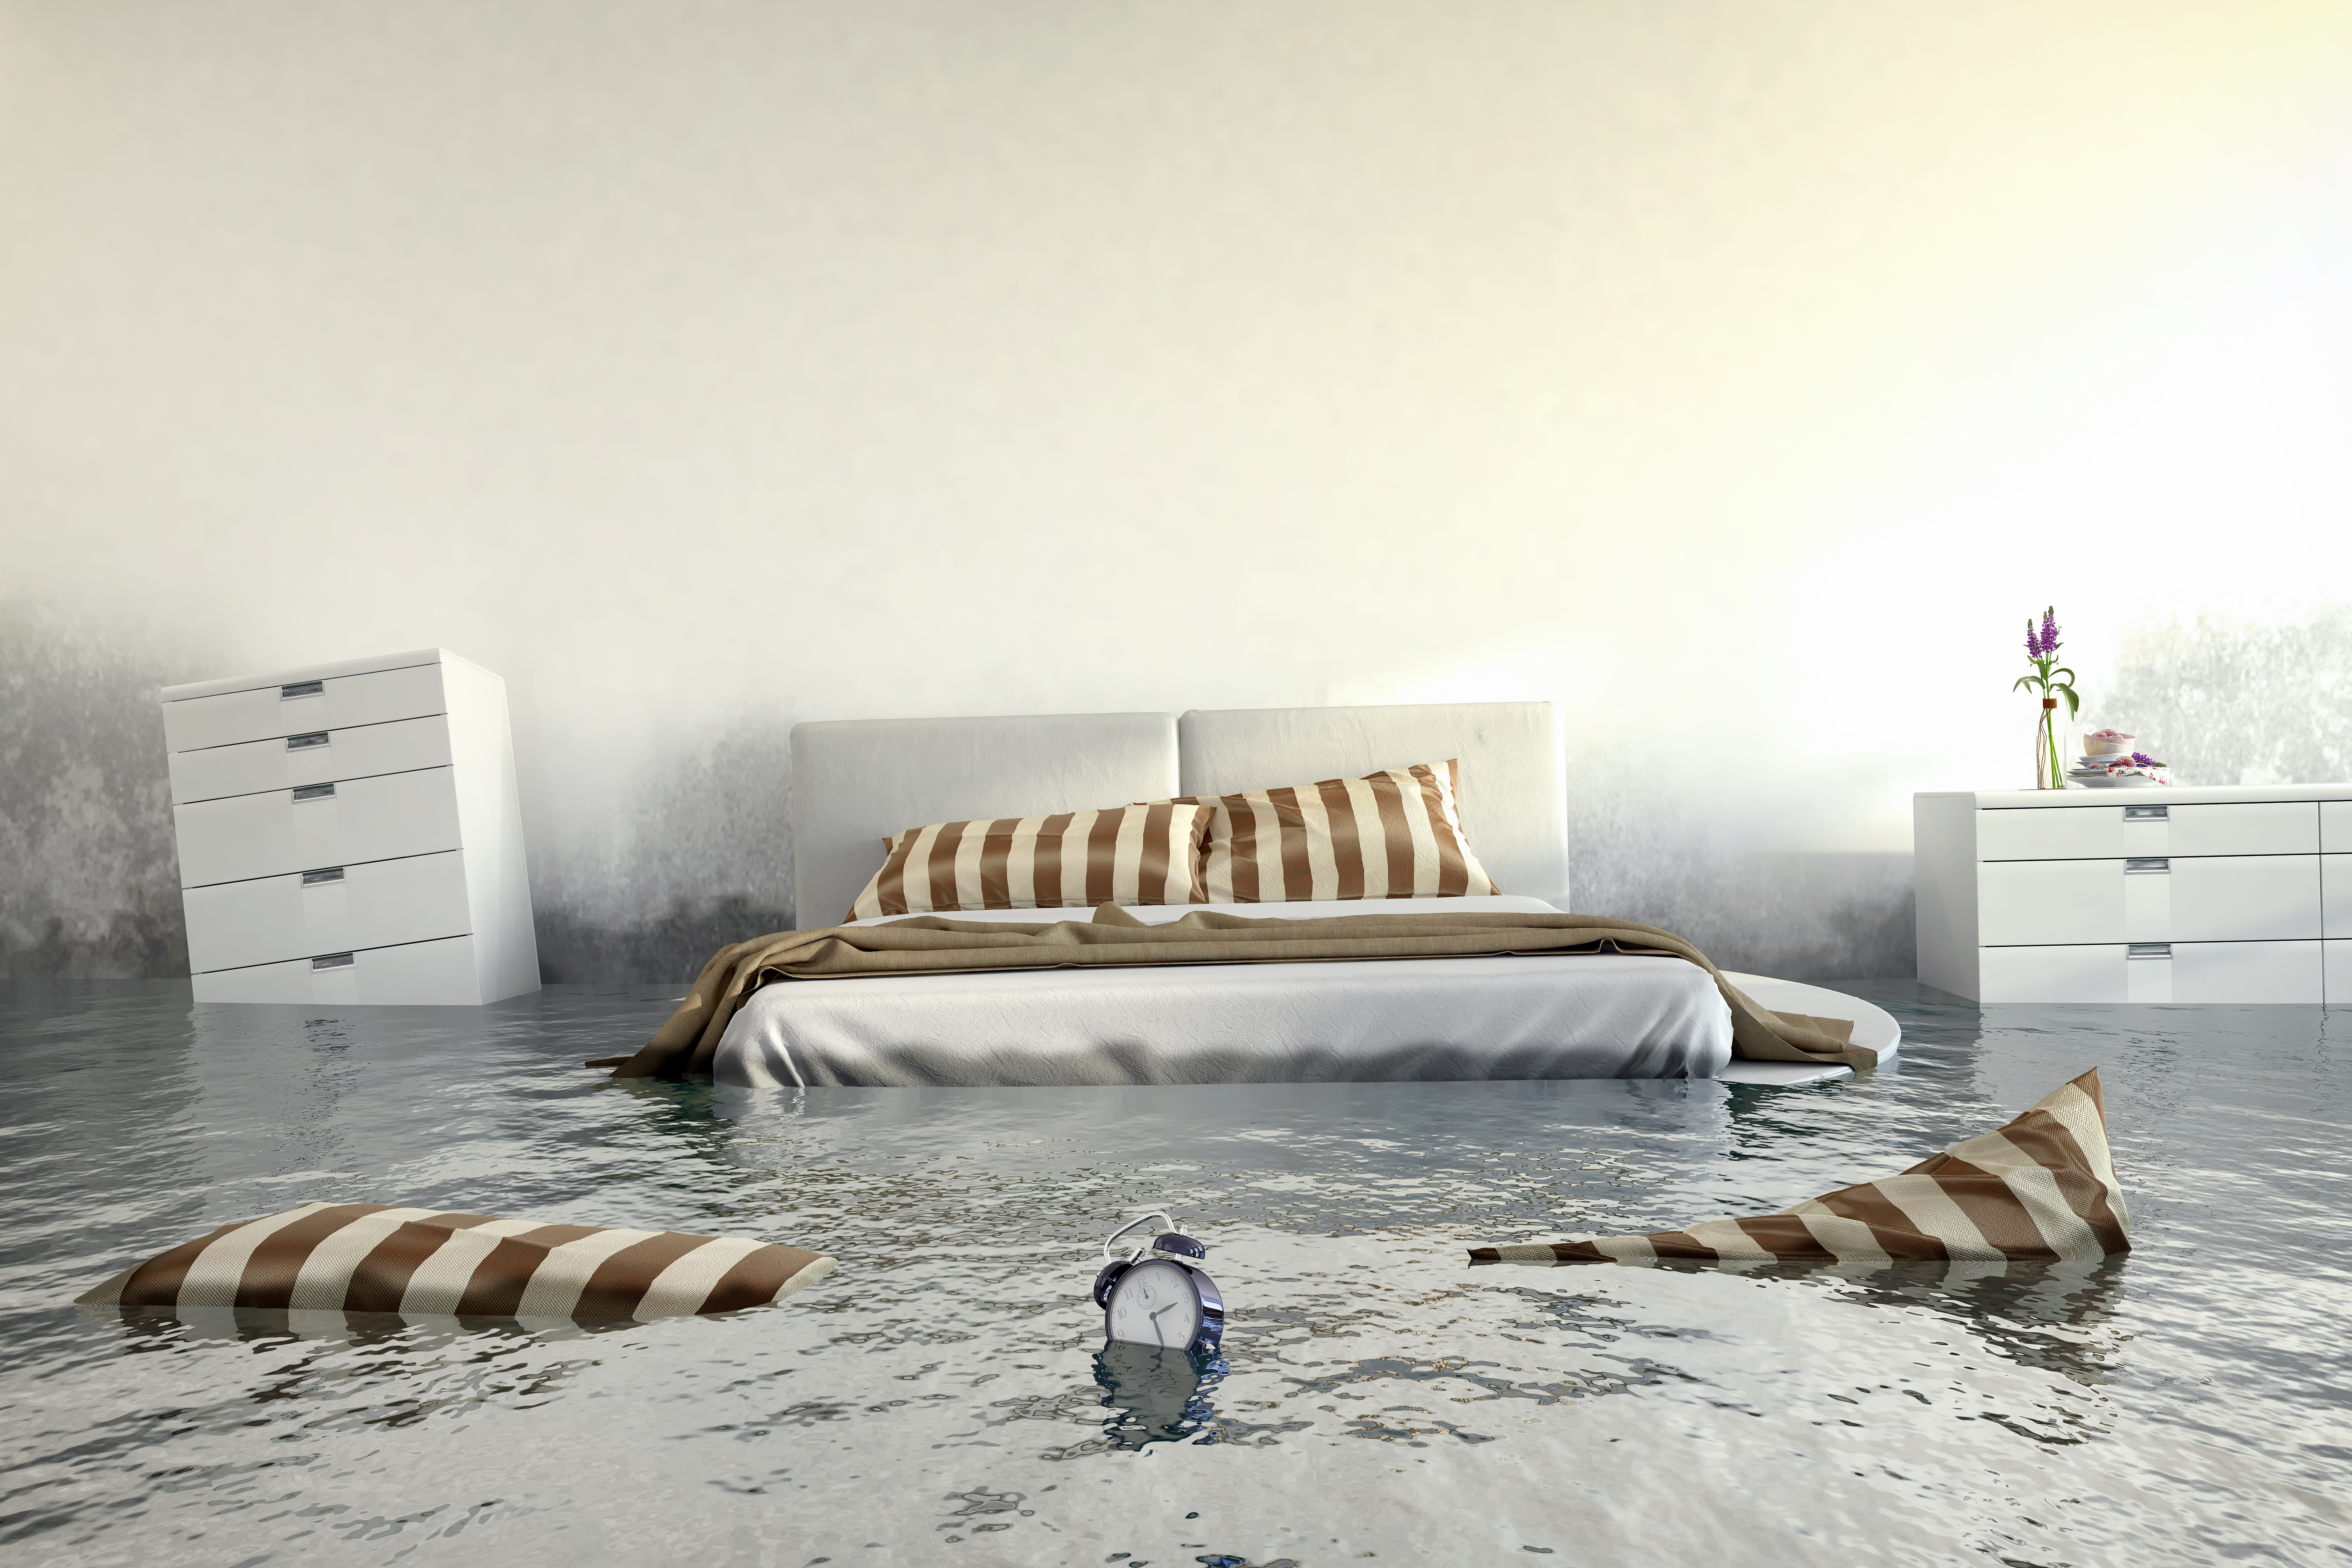 How To Get Rid Of Mould On Walls In Bedroom Home Logic